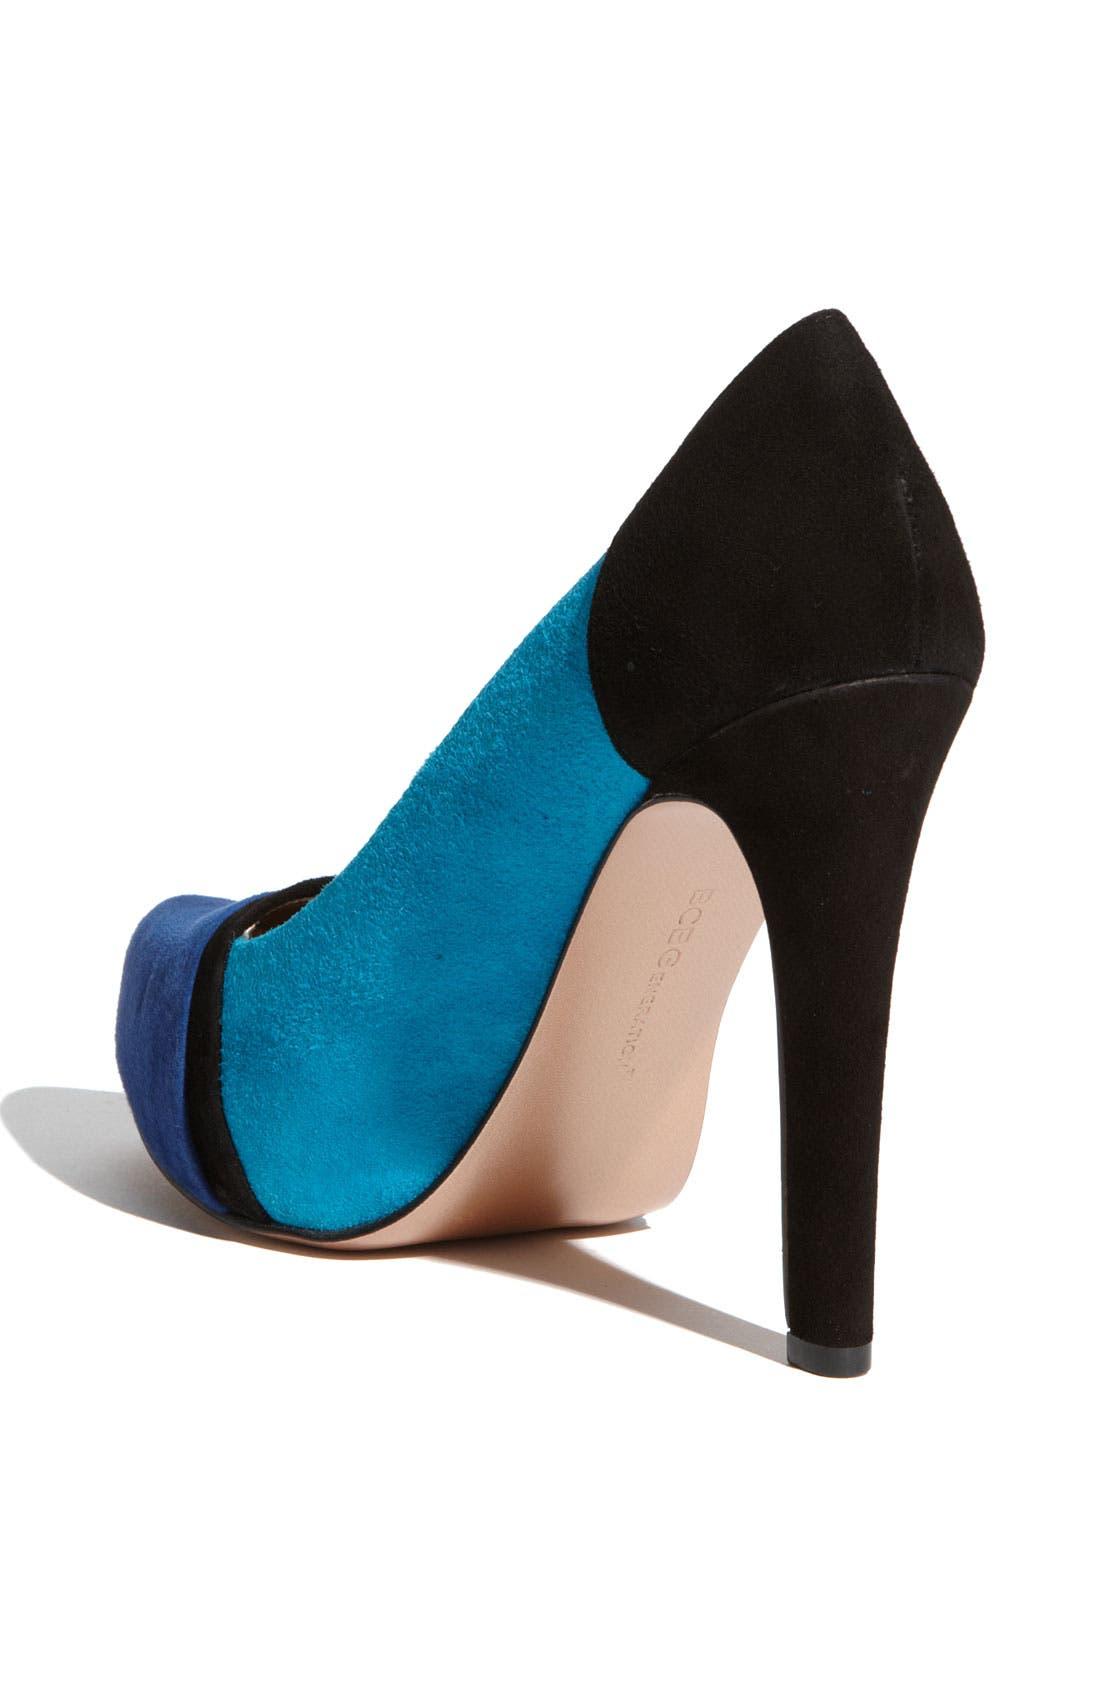 Alternate Image 2  - BCBGeneration 'Perries' Pump